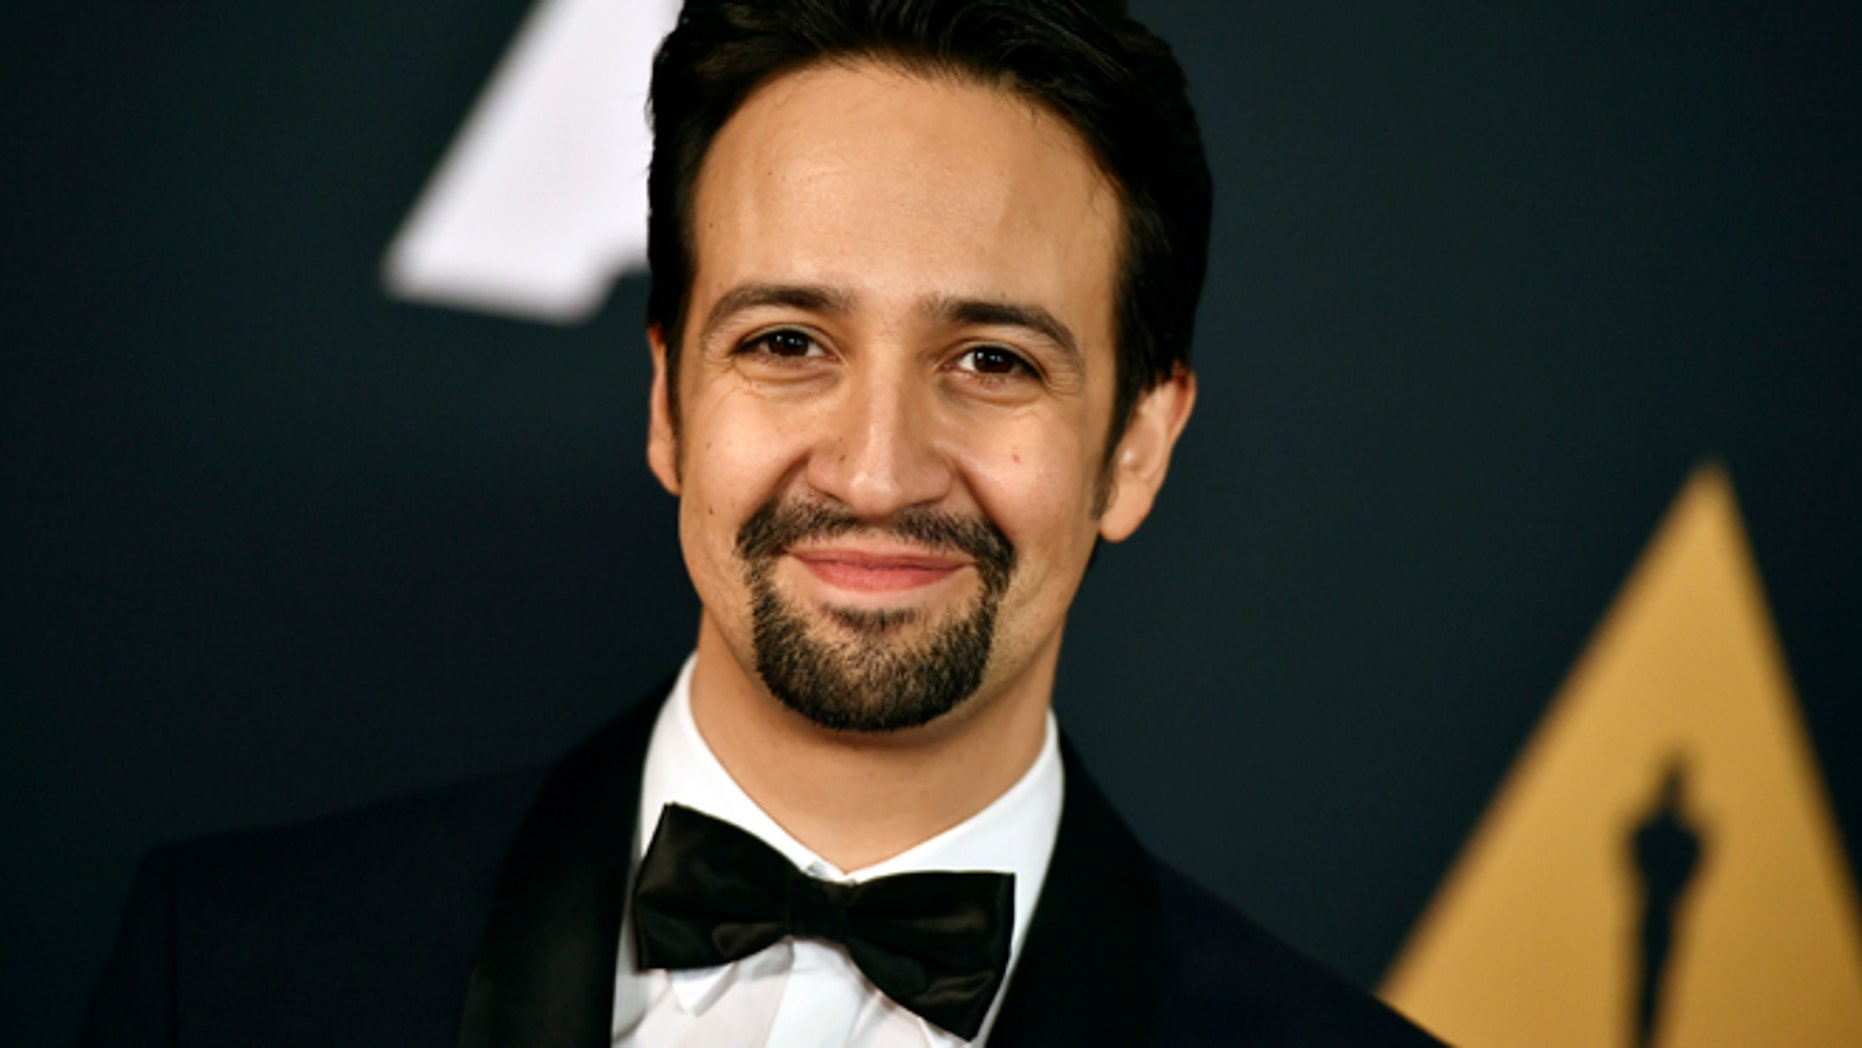 FILE - In this Nov. 12, 2016 file photo, Lin-Manuel Miranda arrives at the 2016 Governors Awards in Los Angeles. Lionsgate has partnered best-selling author Pat Rothfuss with writer-composer Miranda for an ambitious TV and film adaptation of the fantasy trilogy, ââ¬ÅThe Kingkiller Chronicles.ââ¬Â (Photo by Jordan Strauss/Invision/AP, File)